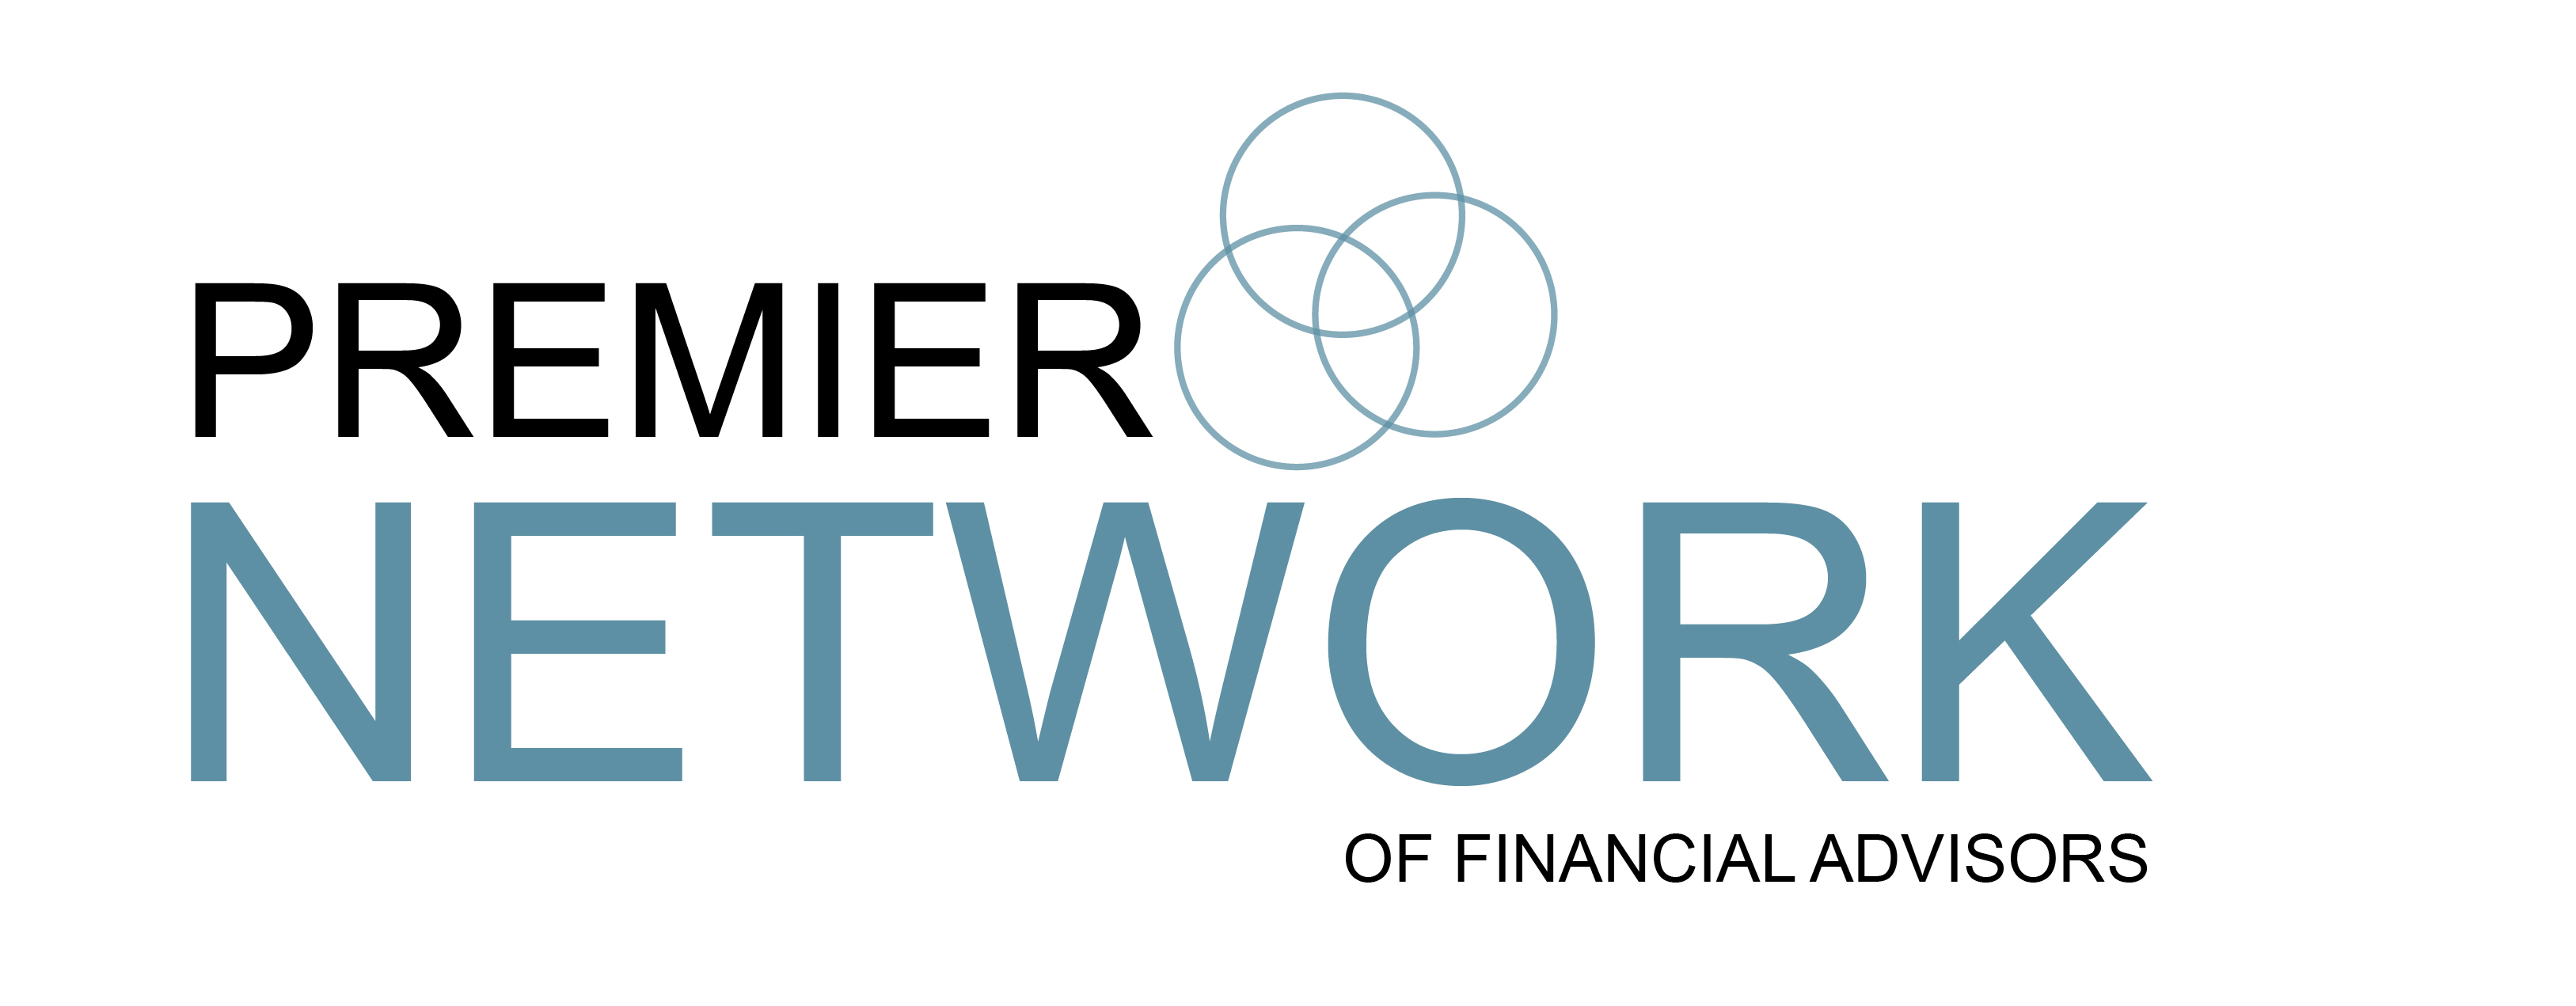 Premier Network of Financial Advisors